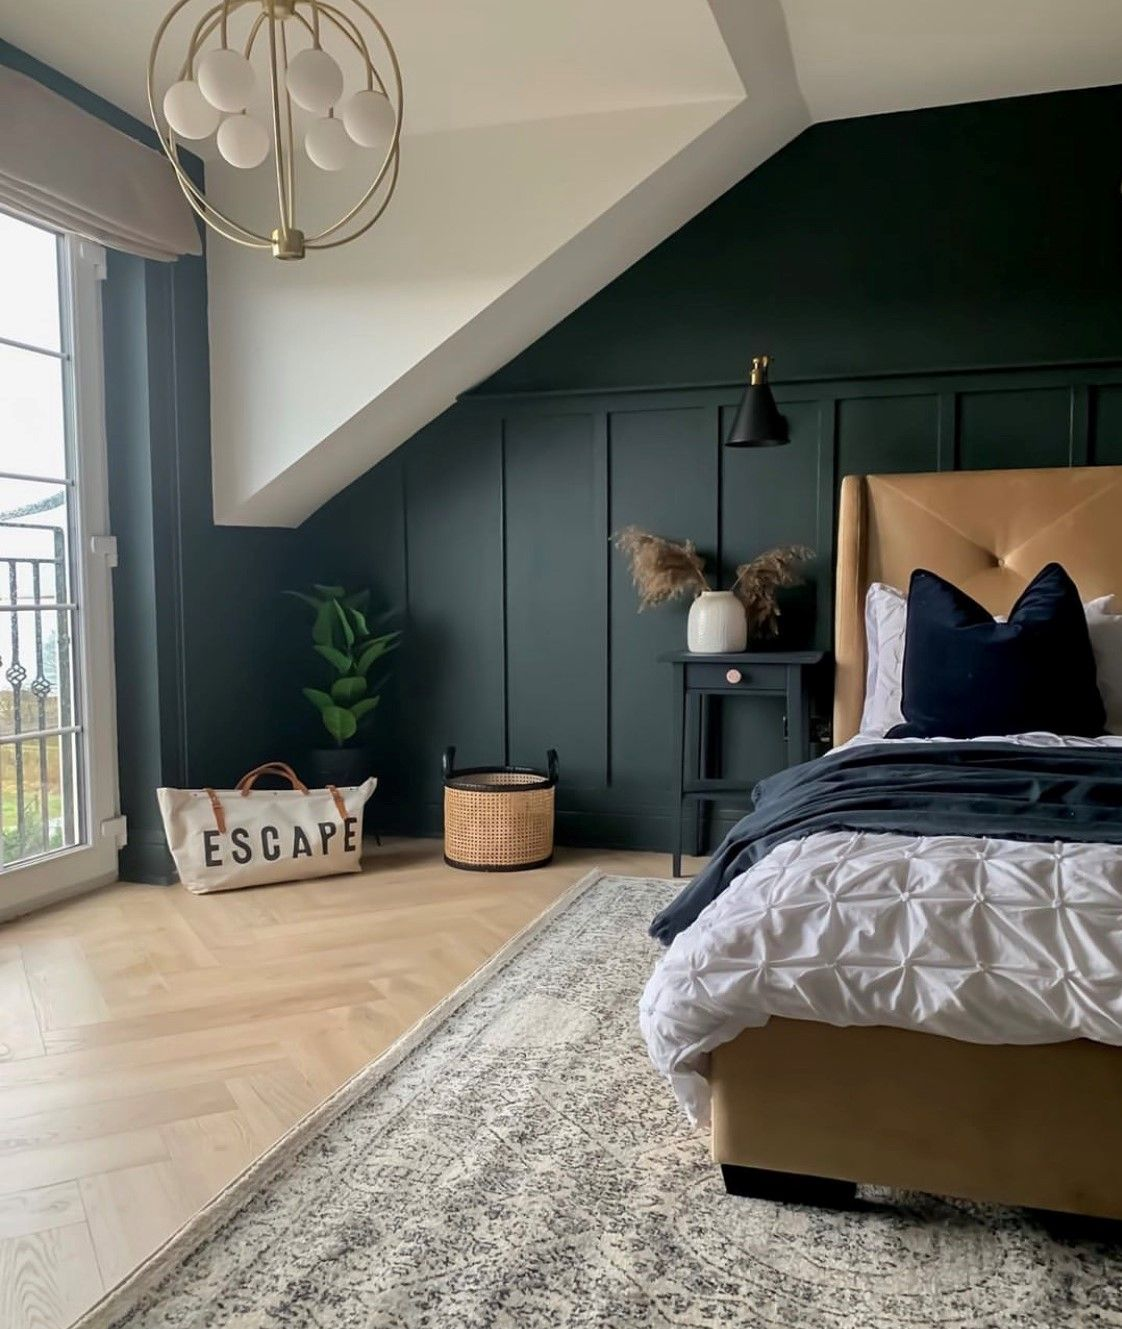 Herringbone Flooring 🤝 Bedroom Interiors  This bedroom uses our new range of Herringbone Laminate, meaning it's highly durable and cost-effective, while looking like real wood!   📸: mrs_macs_home 🛒: Herringbone Laminate - Elegant Oak  Order your free samples today!  #LaminateFlooring #Herringbone #HerringboneFlooring #Bedroom #BedroomInterior #WoodFlooring